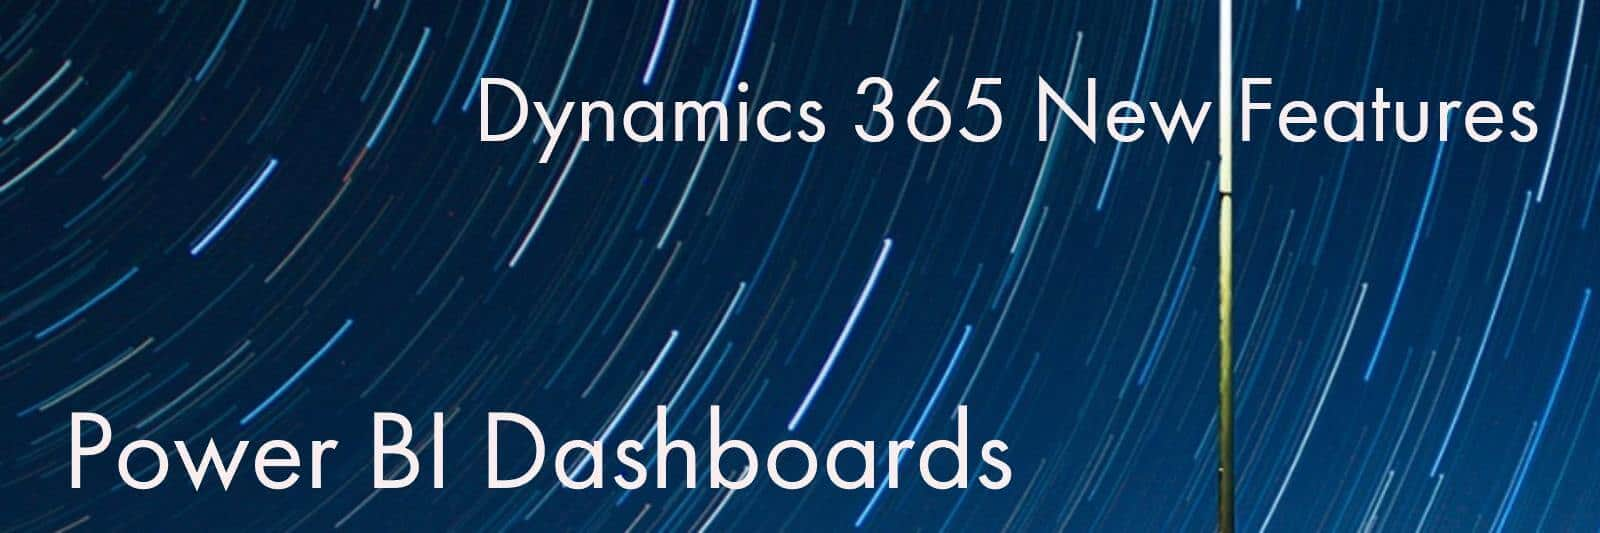 Dynamics 365 New Features – Power BI Visualizations